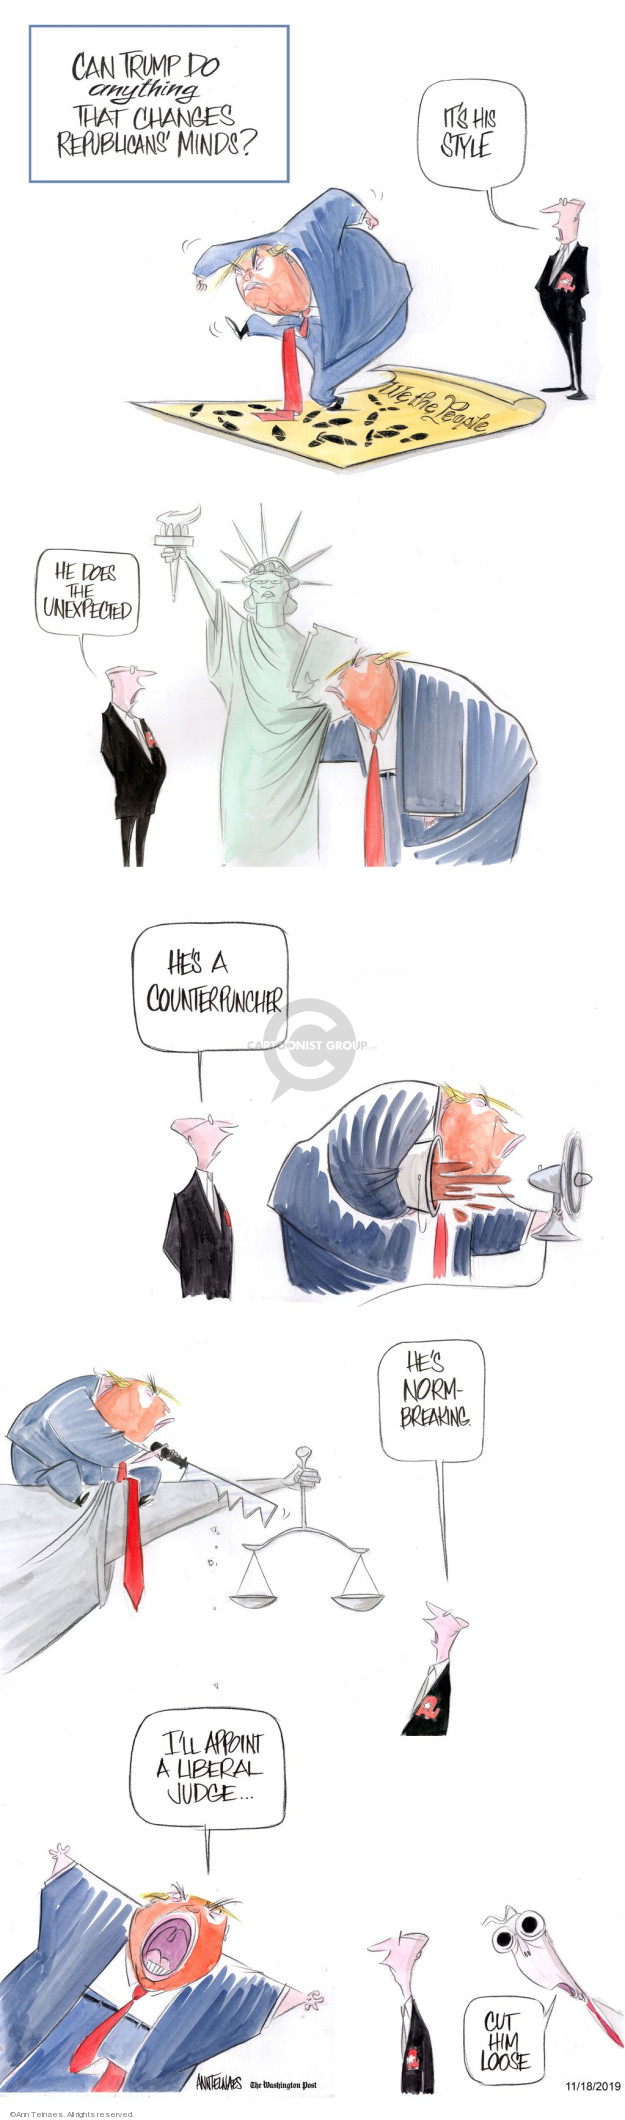 Ann Telnaes  Ann Telnaes' Editorial Cartoons 2019-11-18 political party